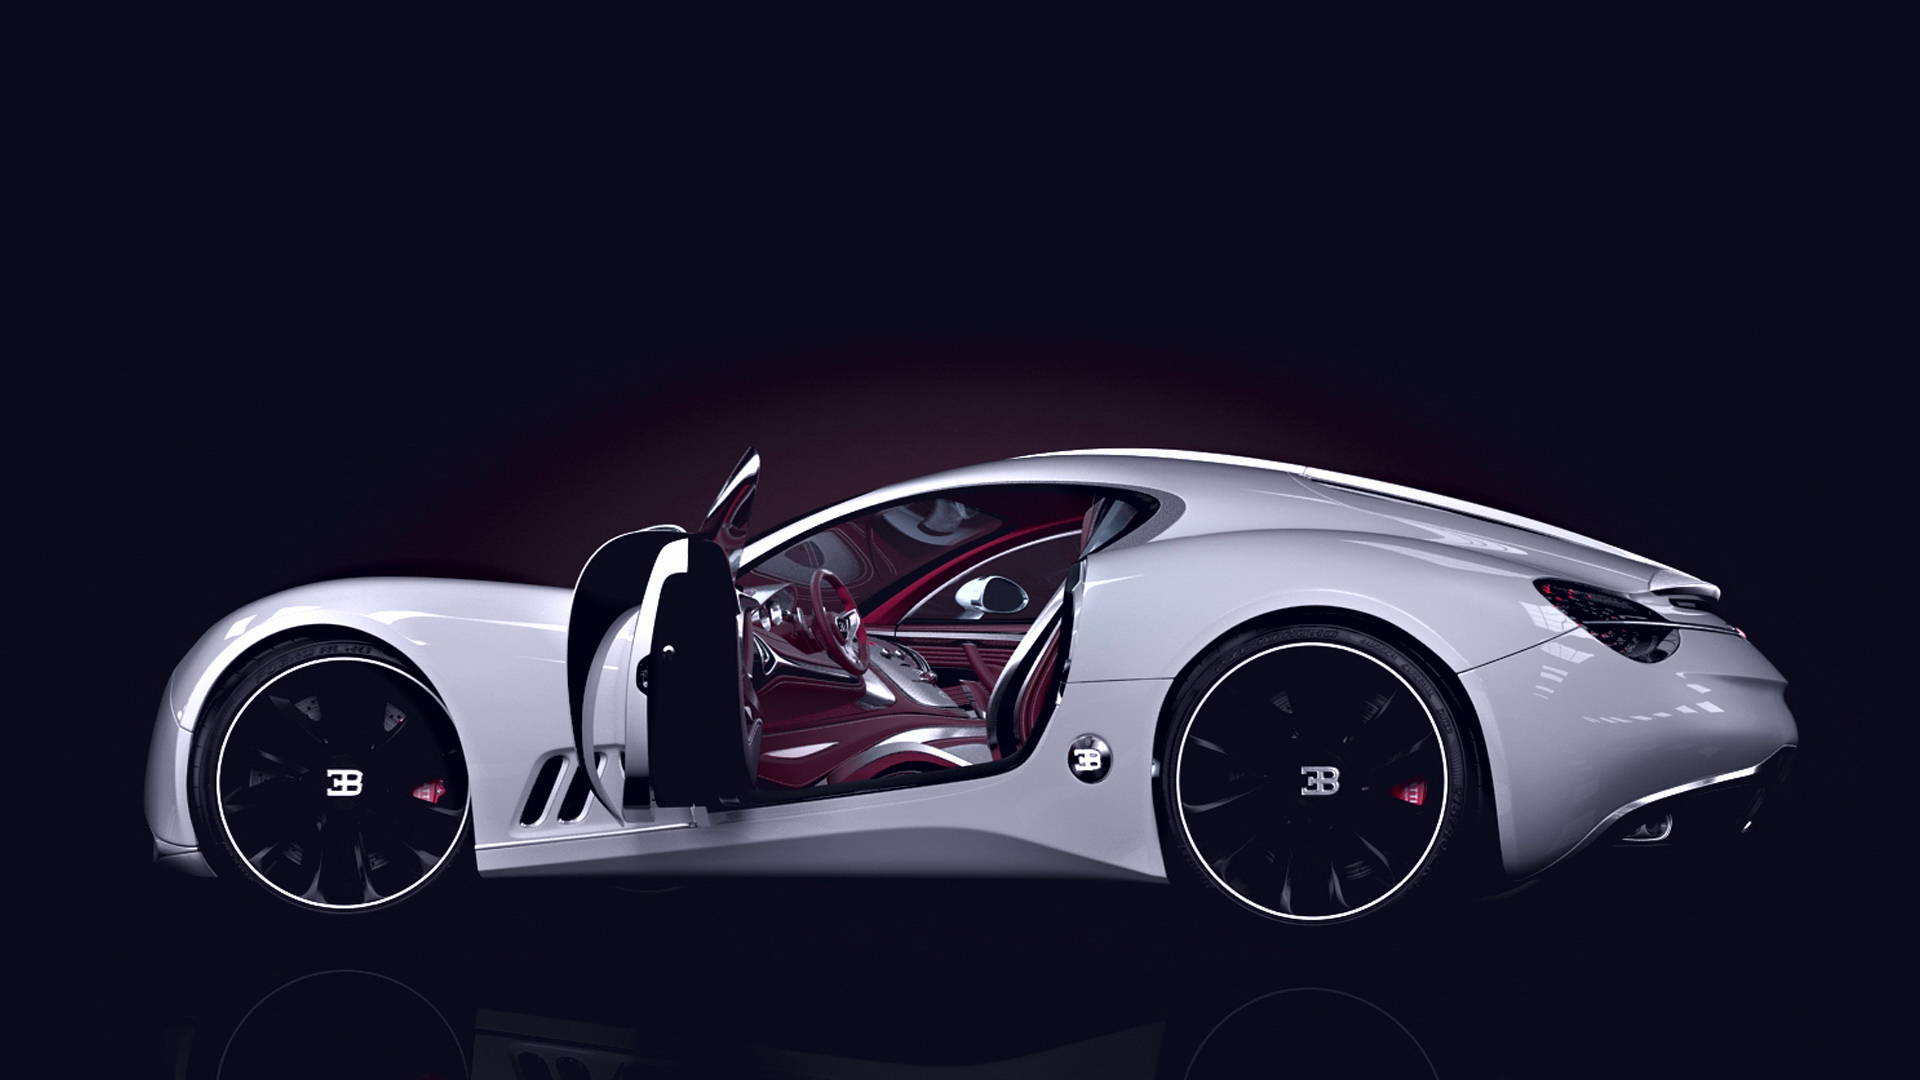 Car Body Design Of Bugatti Gangloff Concept